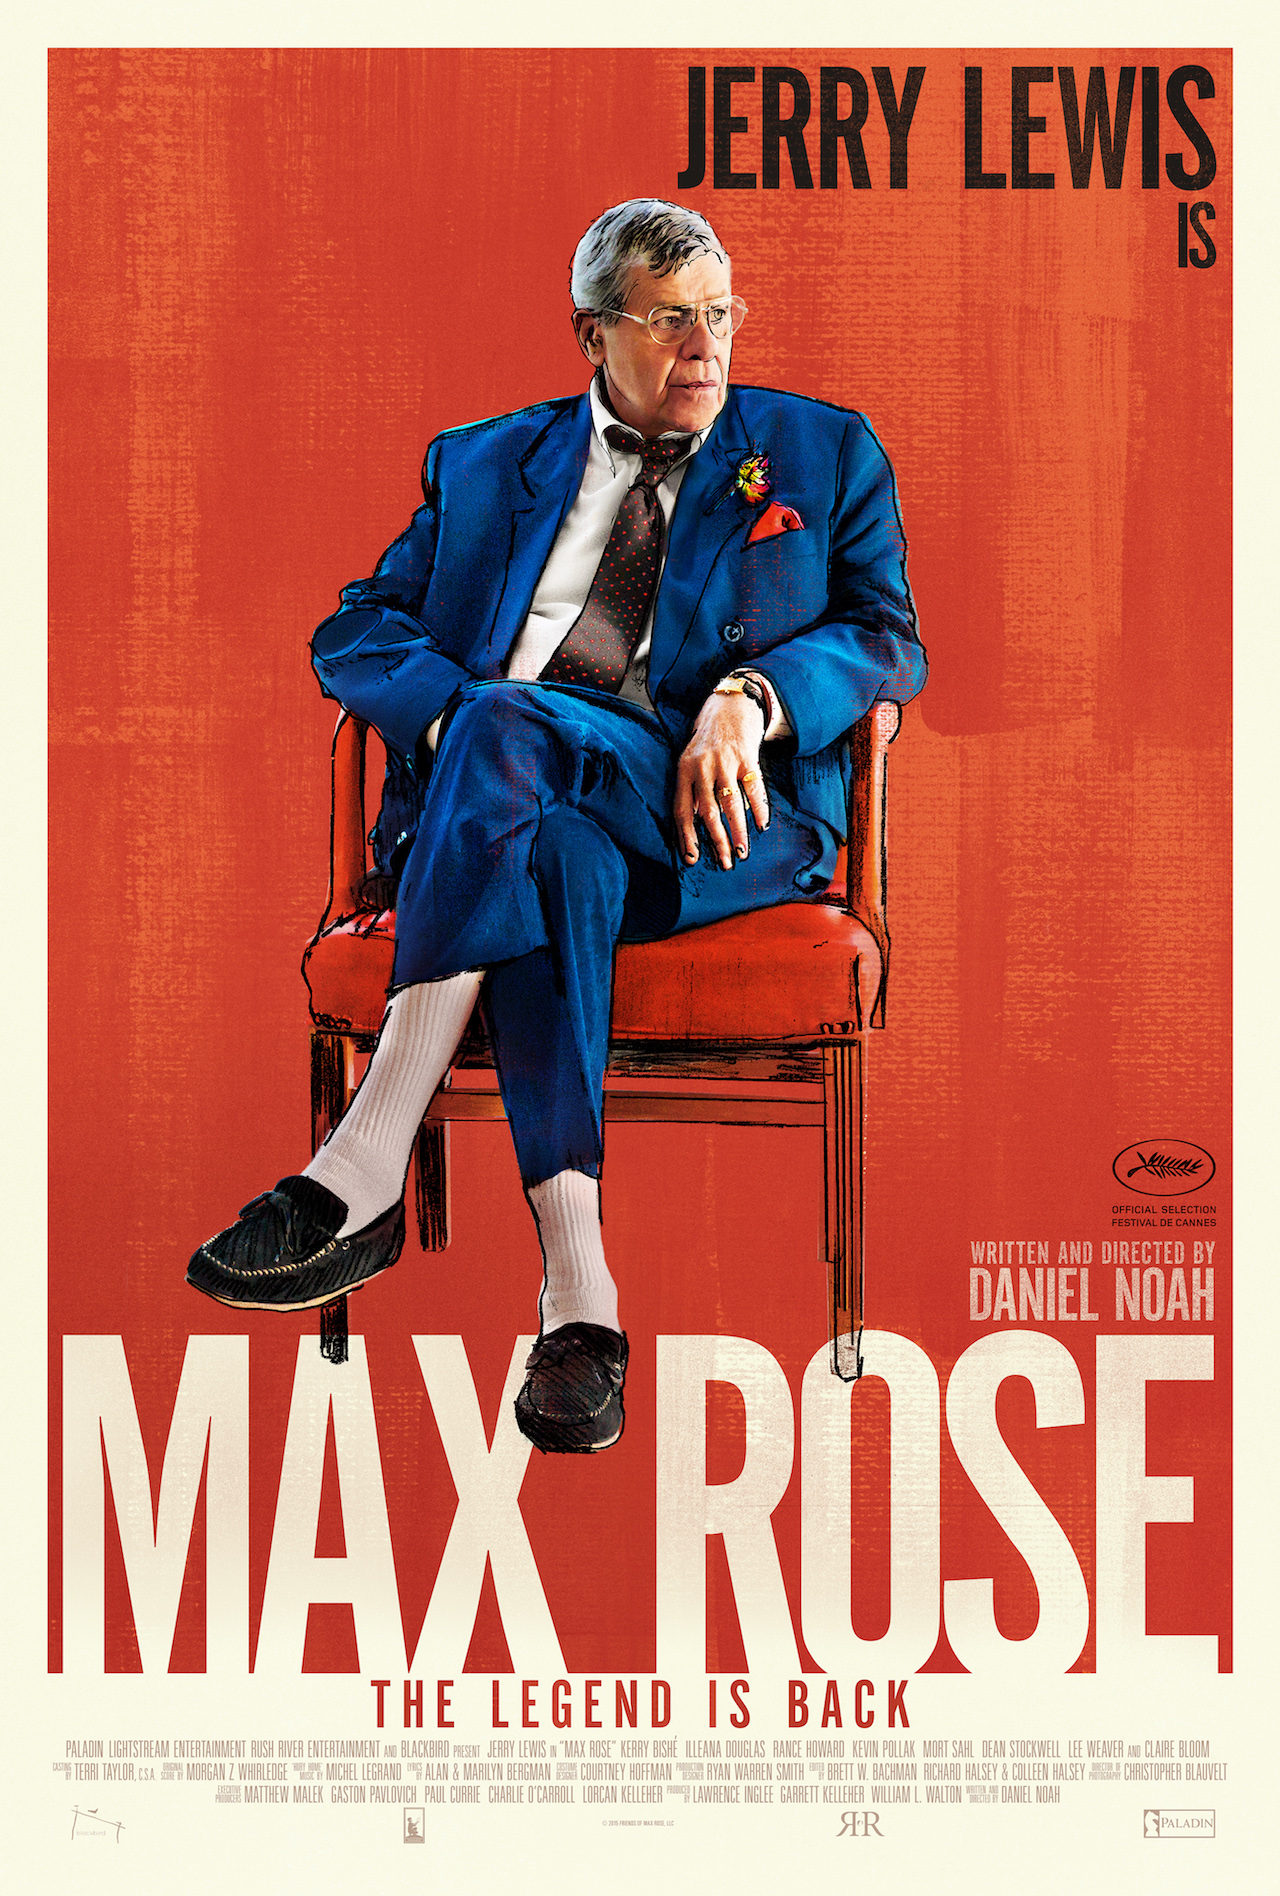 Jerry-Lewis-Max-Rose